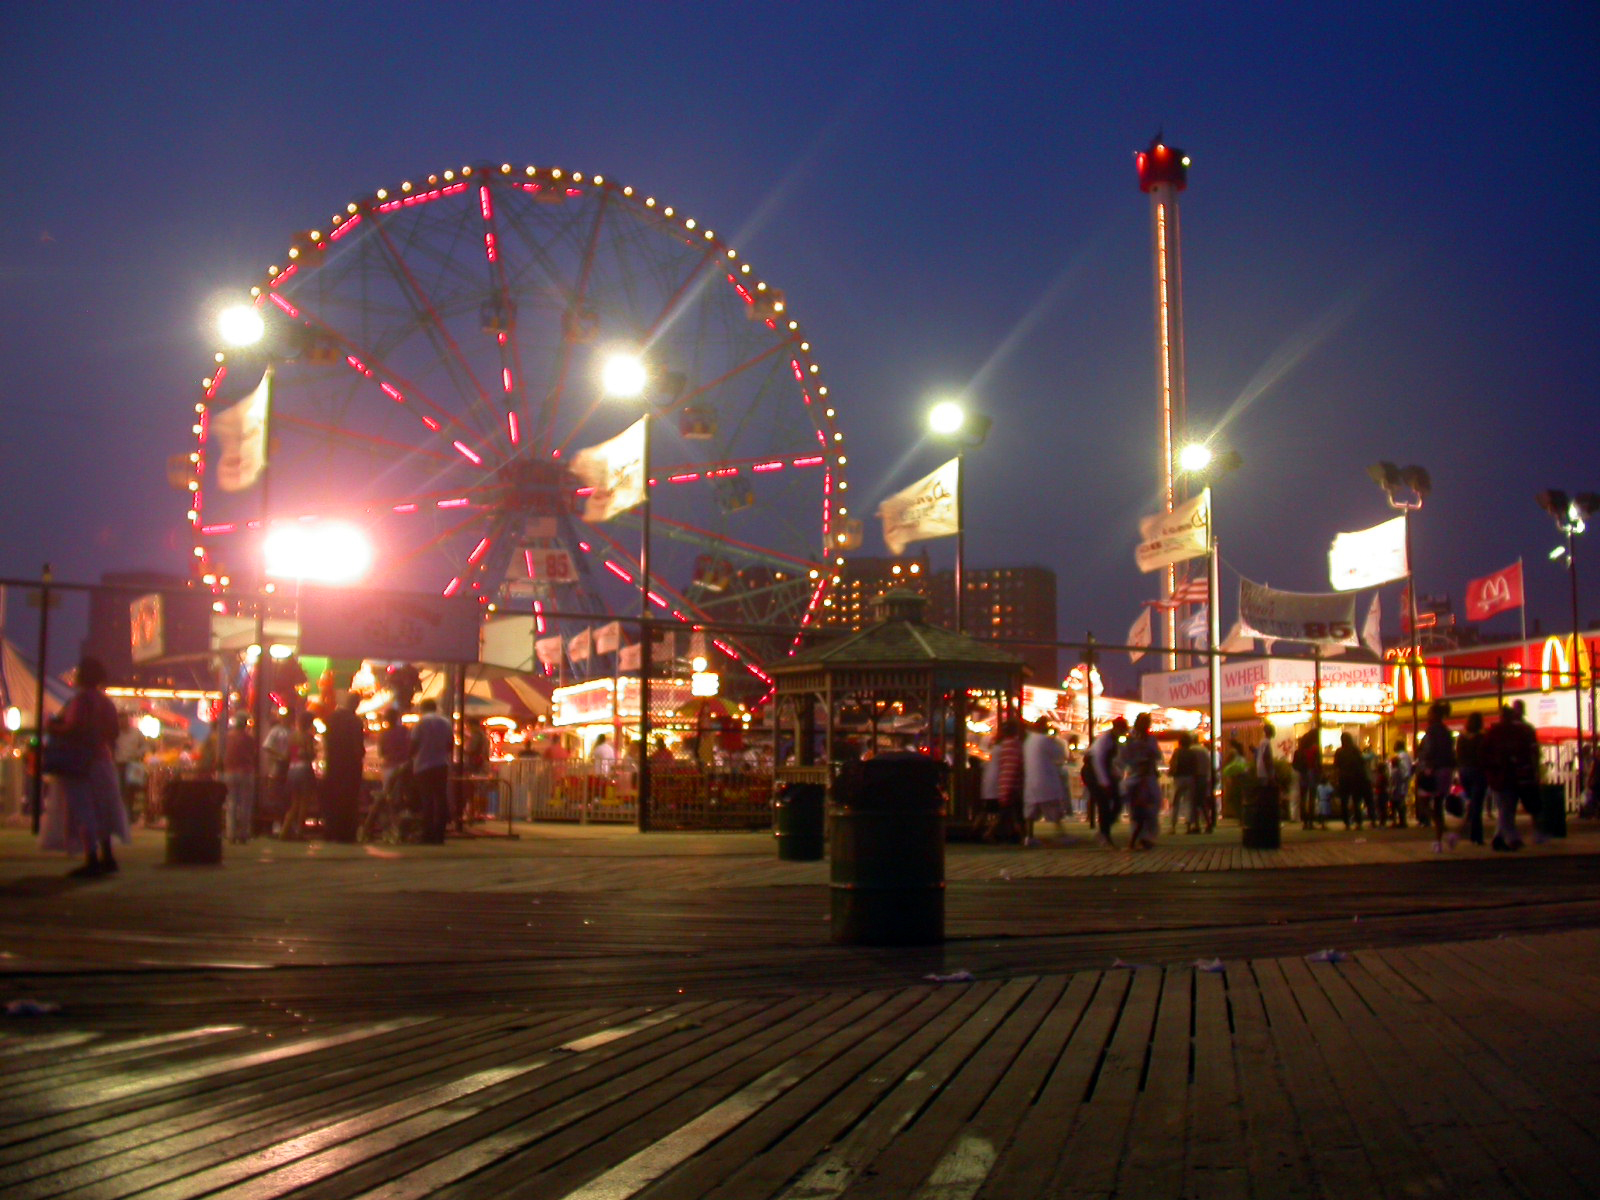 Astroland in a summer night, 2005